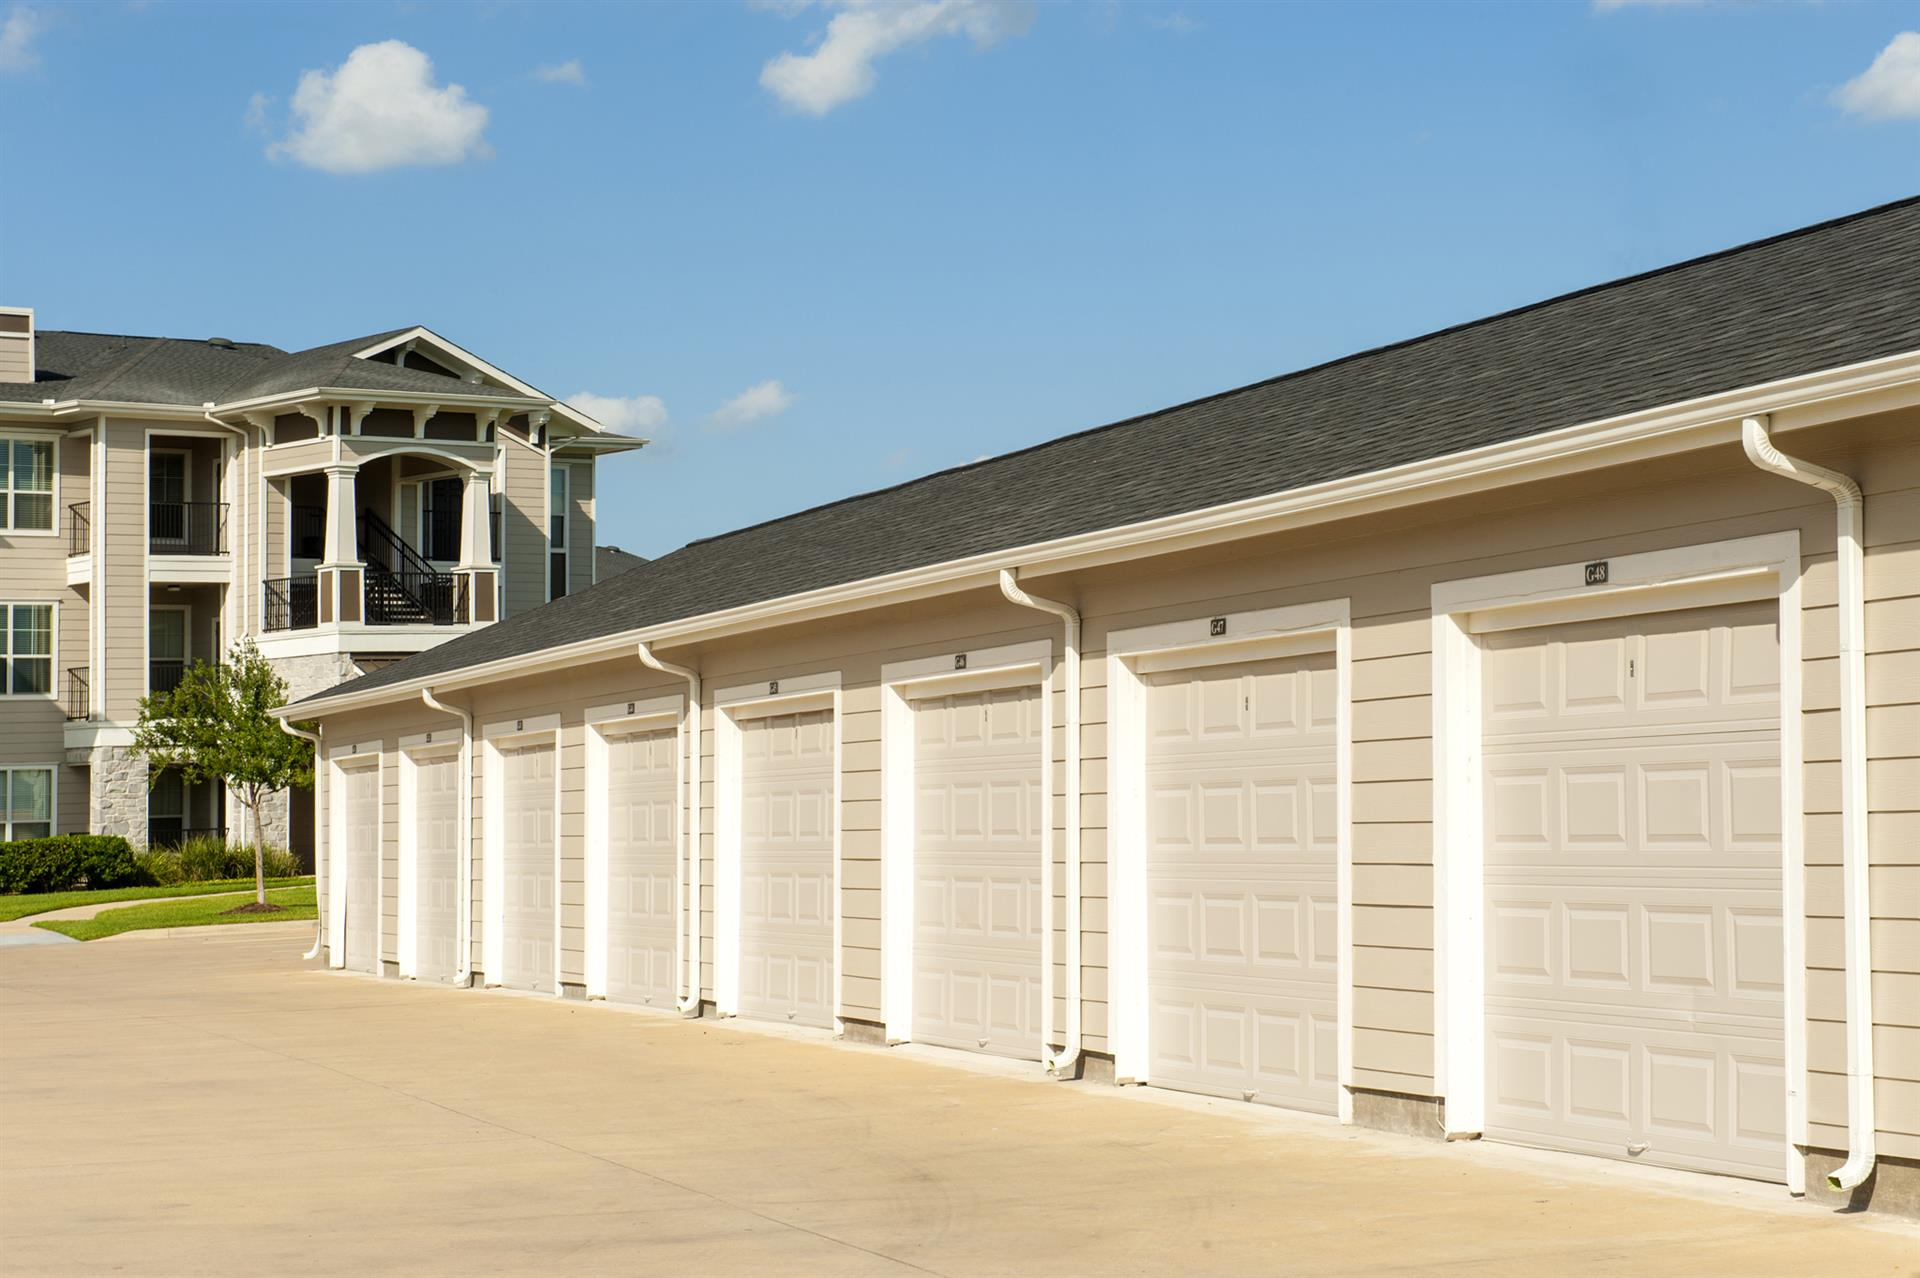 Detached Garages at Camden Northpointe